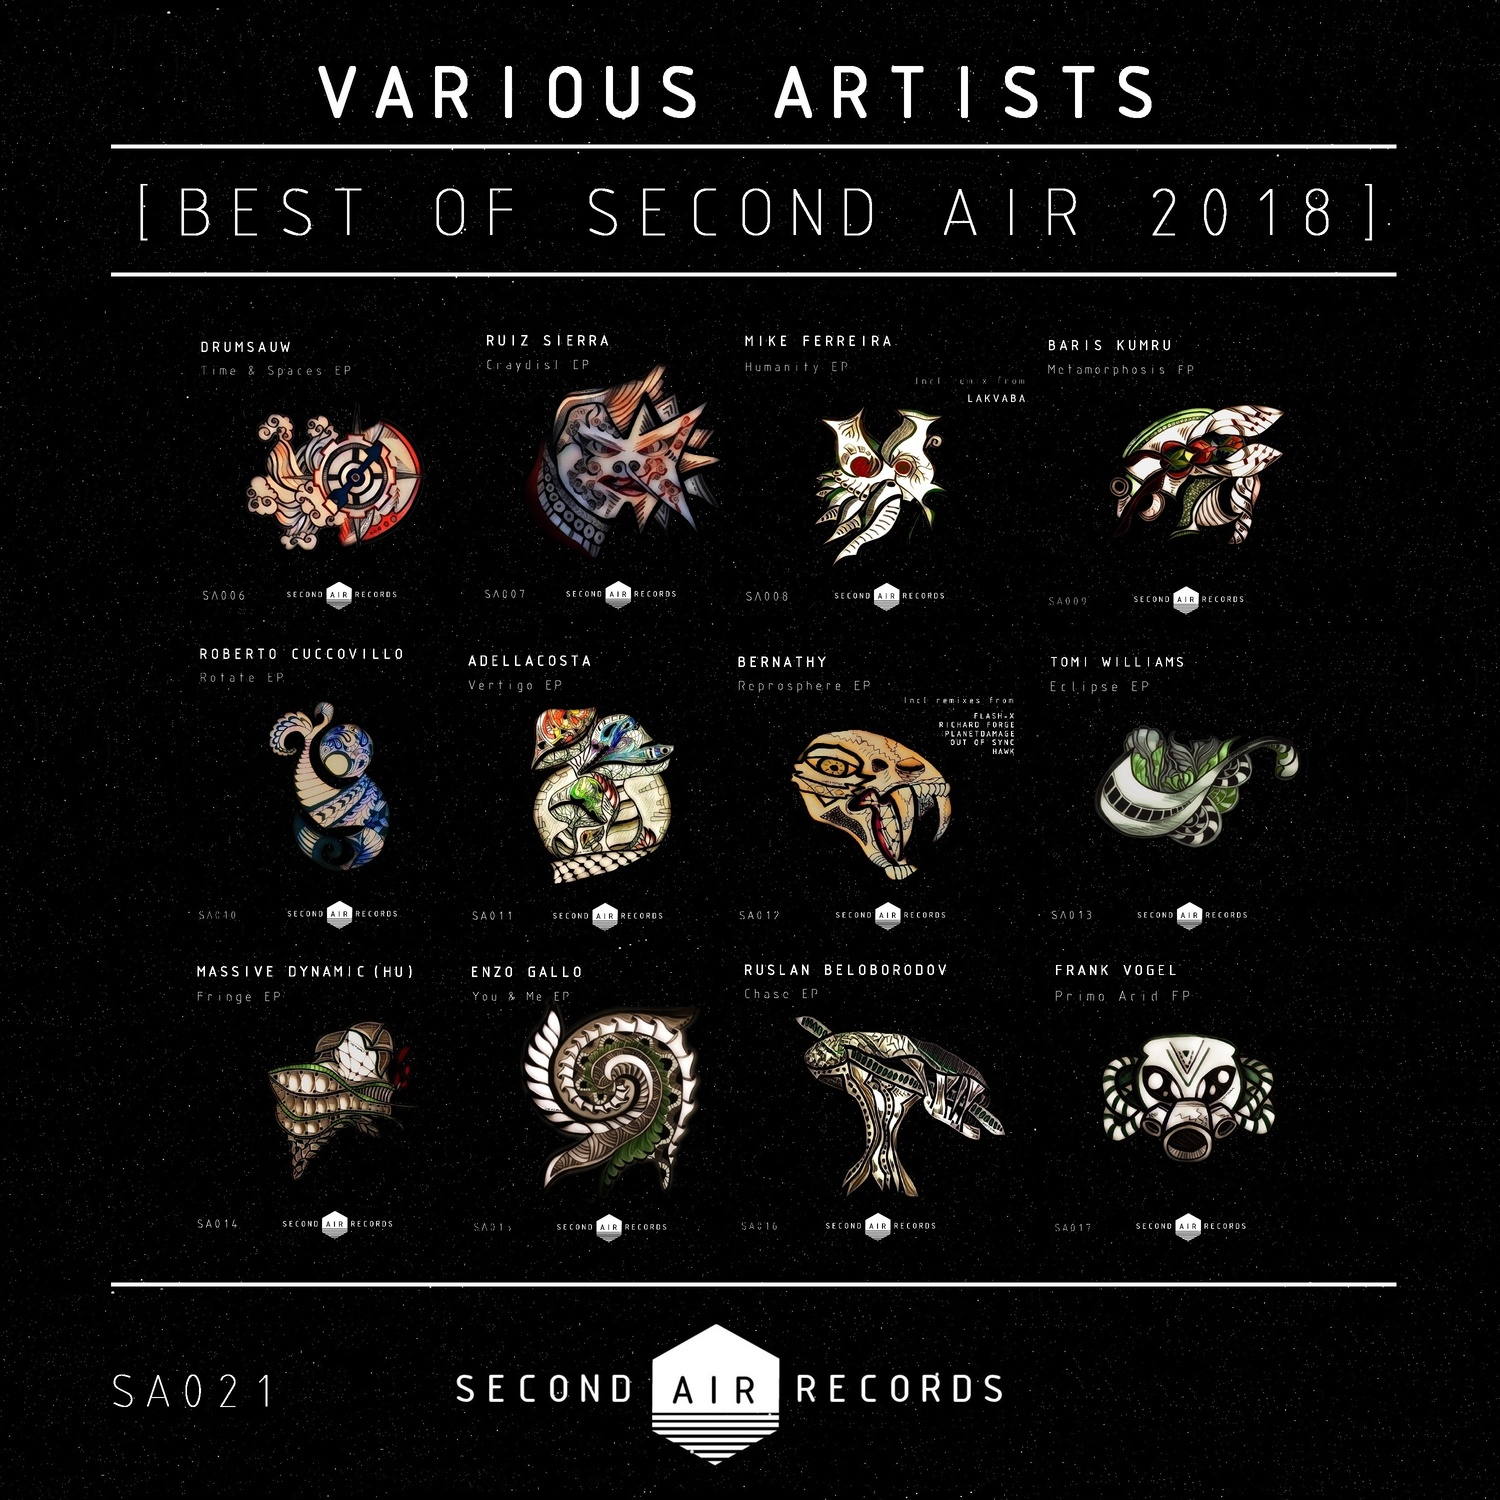 VA - Best Of Second Air 2018 (2019) .mp3 -320 Kbps